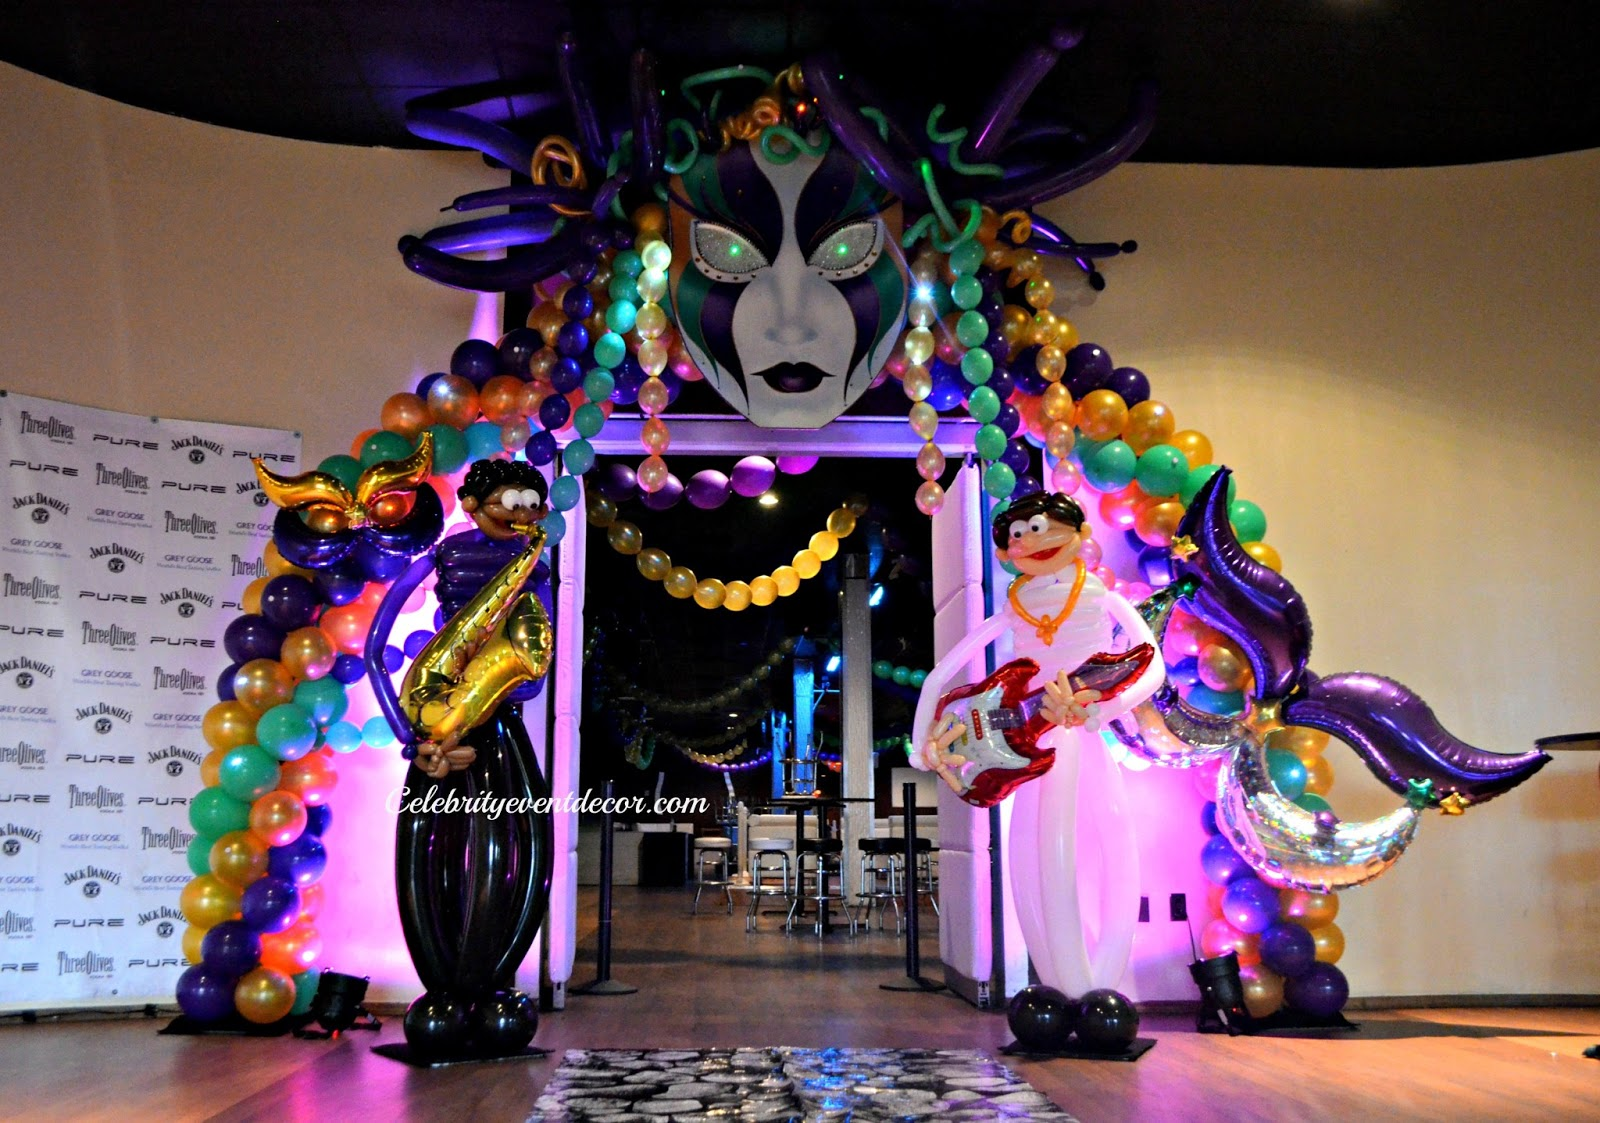 Mardi Gras Balloon Arch | Mardi Gras Balloon ideas ...